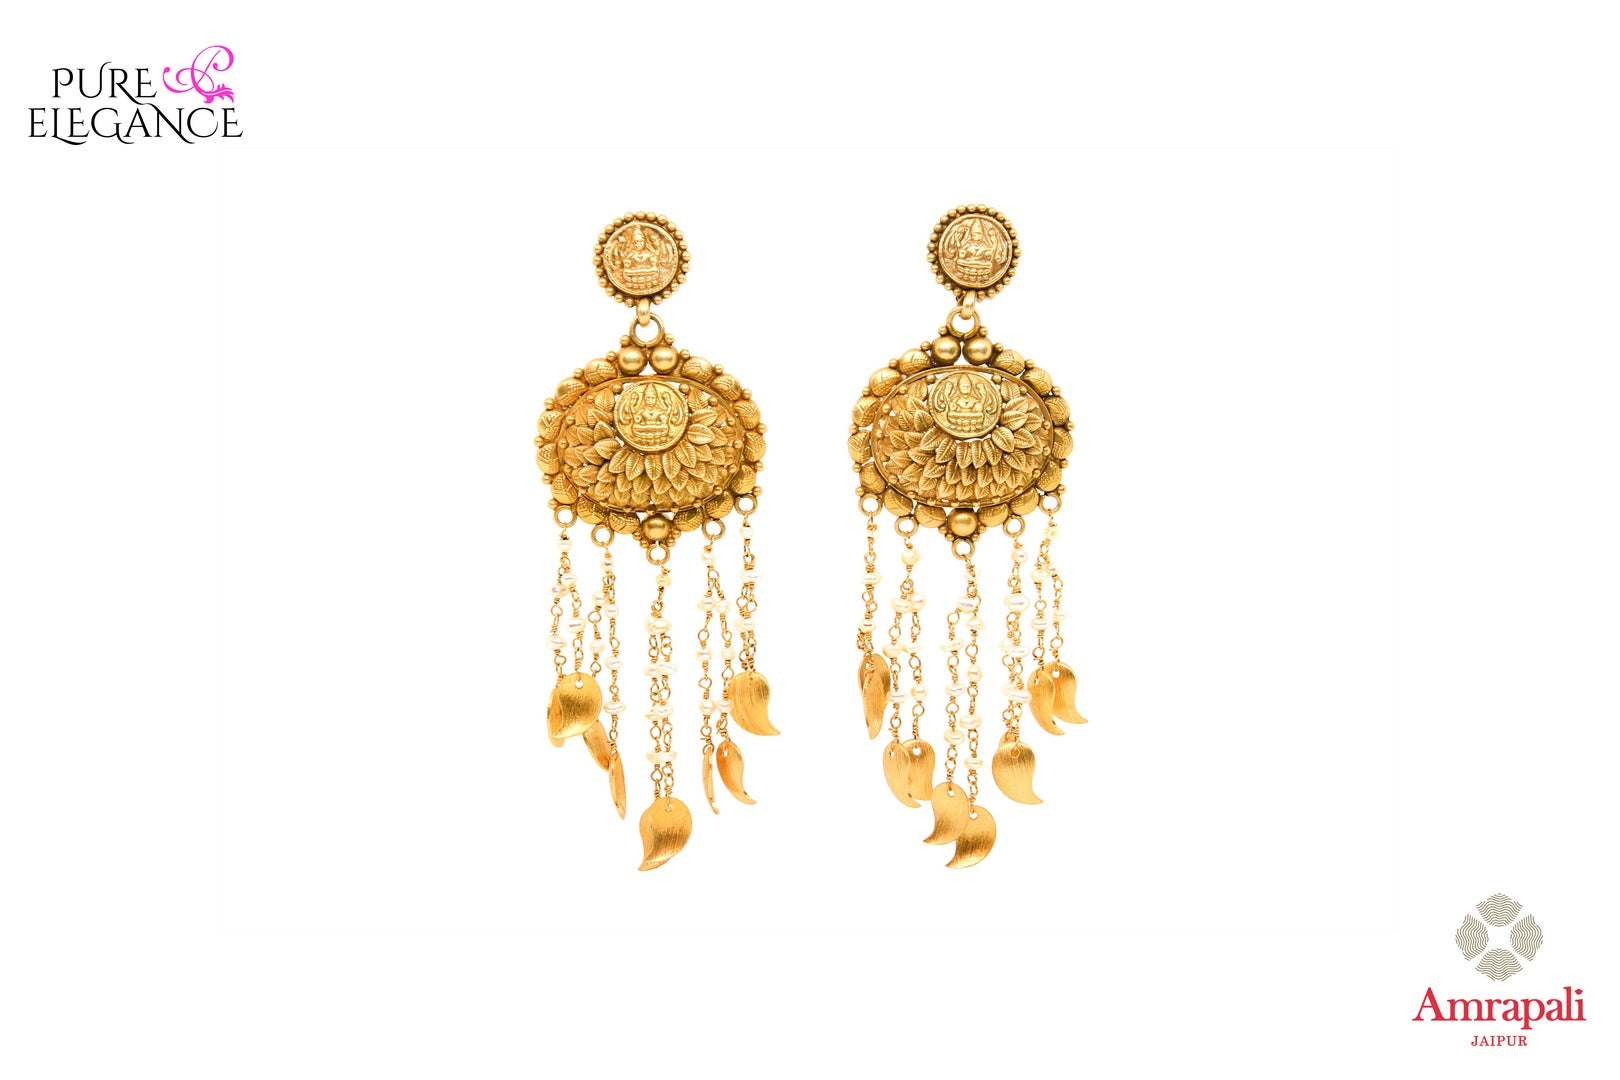 Buy antique silver gold plated earrings online in USA from Amrapali. Add a traditional touch to your Indian look at weddings with these one of a kind earrings. Shop more such gorgeous Indian jewelry in USA at Pure Elegance, you can visit our exclusive fashion store in USA or shop online.-front look